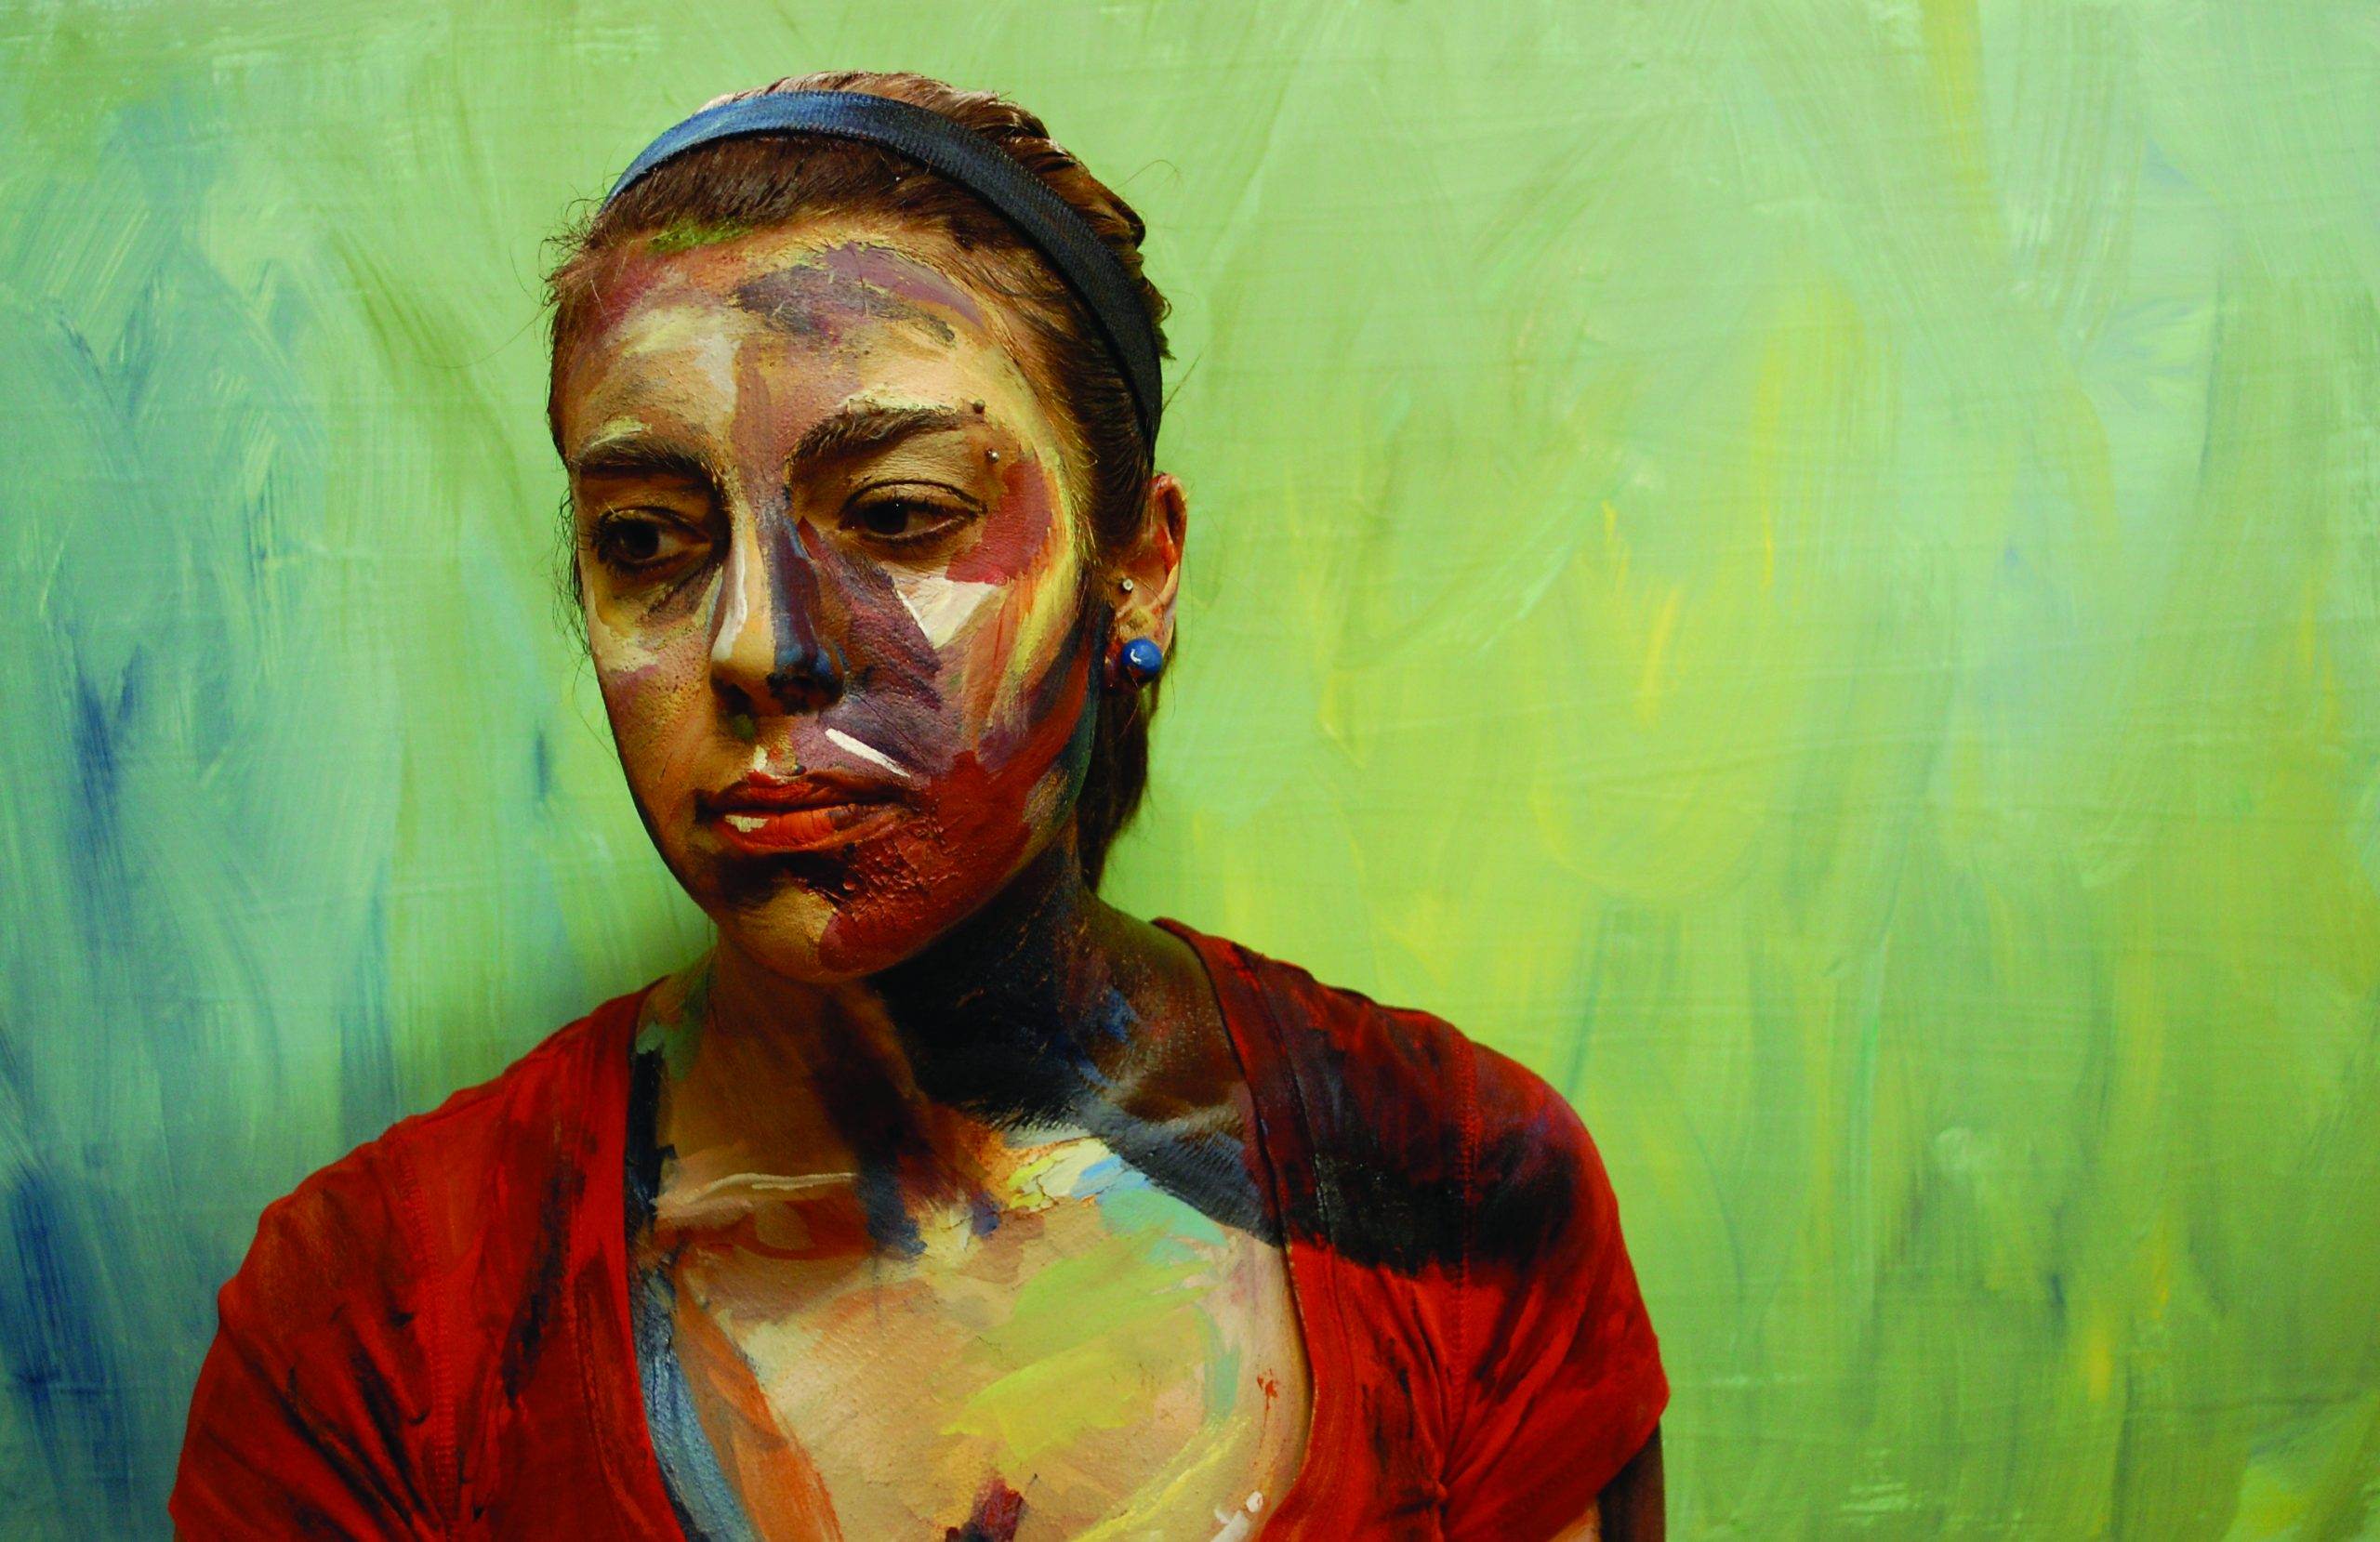 Anna Ruth and Lydia Yoder's photograph of Emma Ruth. The paint on Emma's face and body and the painted background make her appear to be a painting instead of a photograph